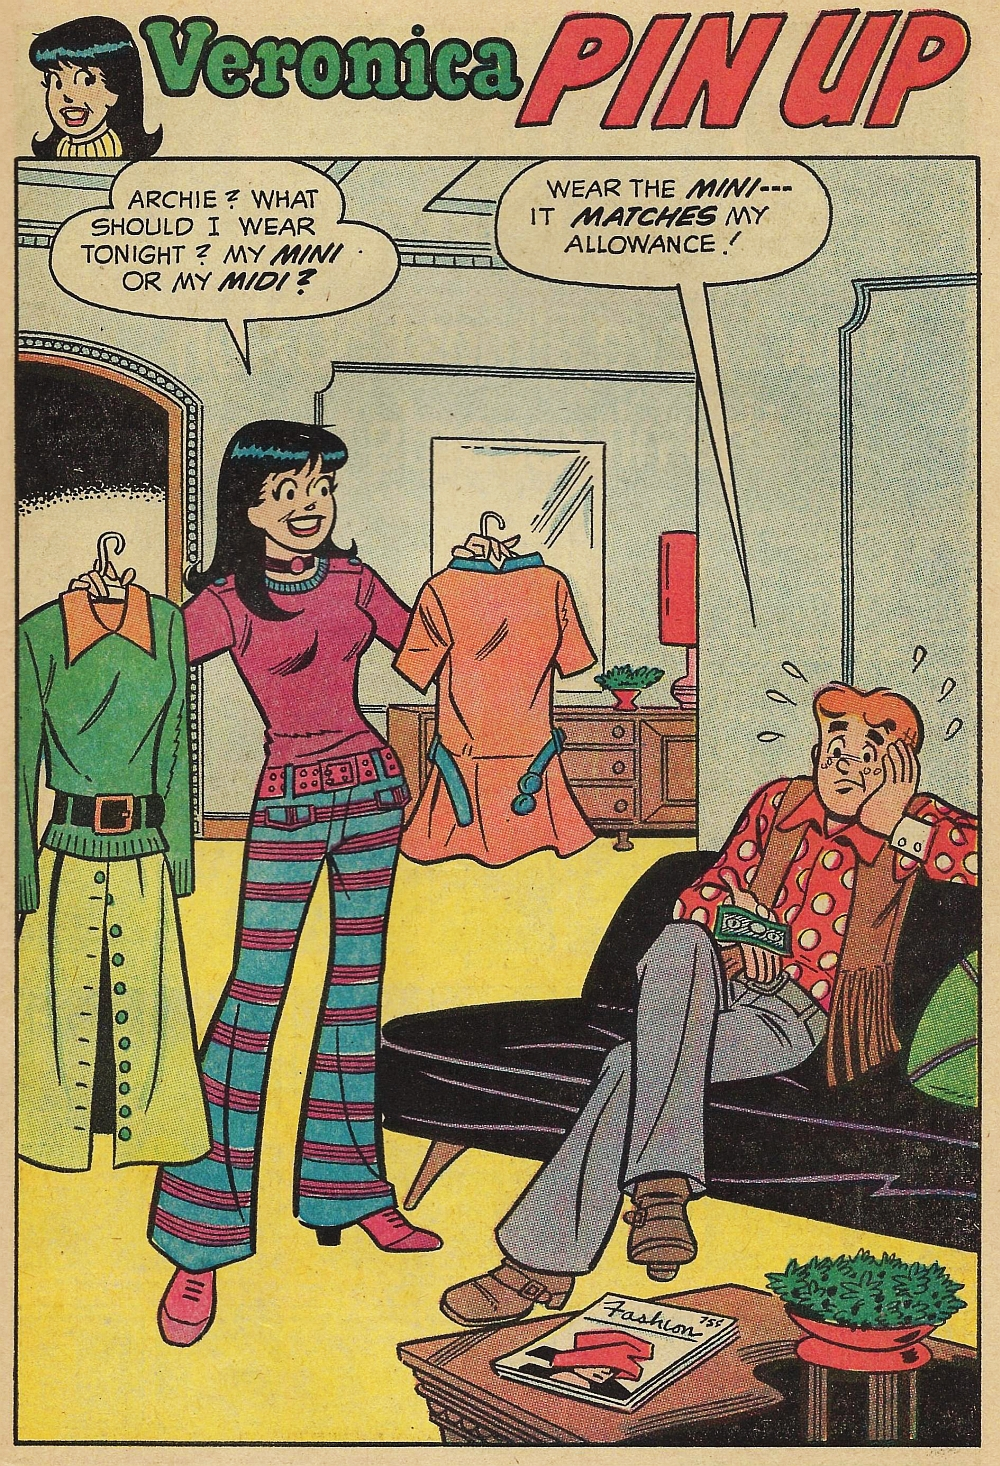 Pin-up page #3 from Archie's Girls Betty and Veronica #183